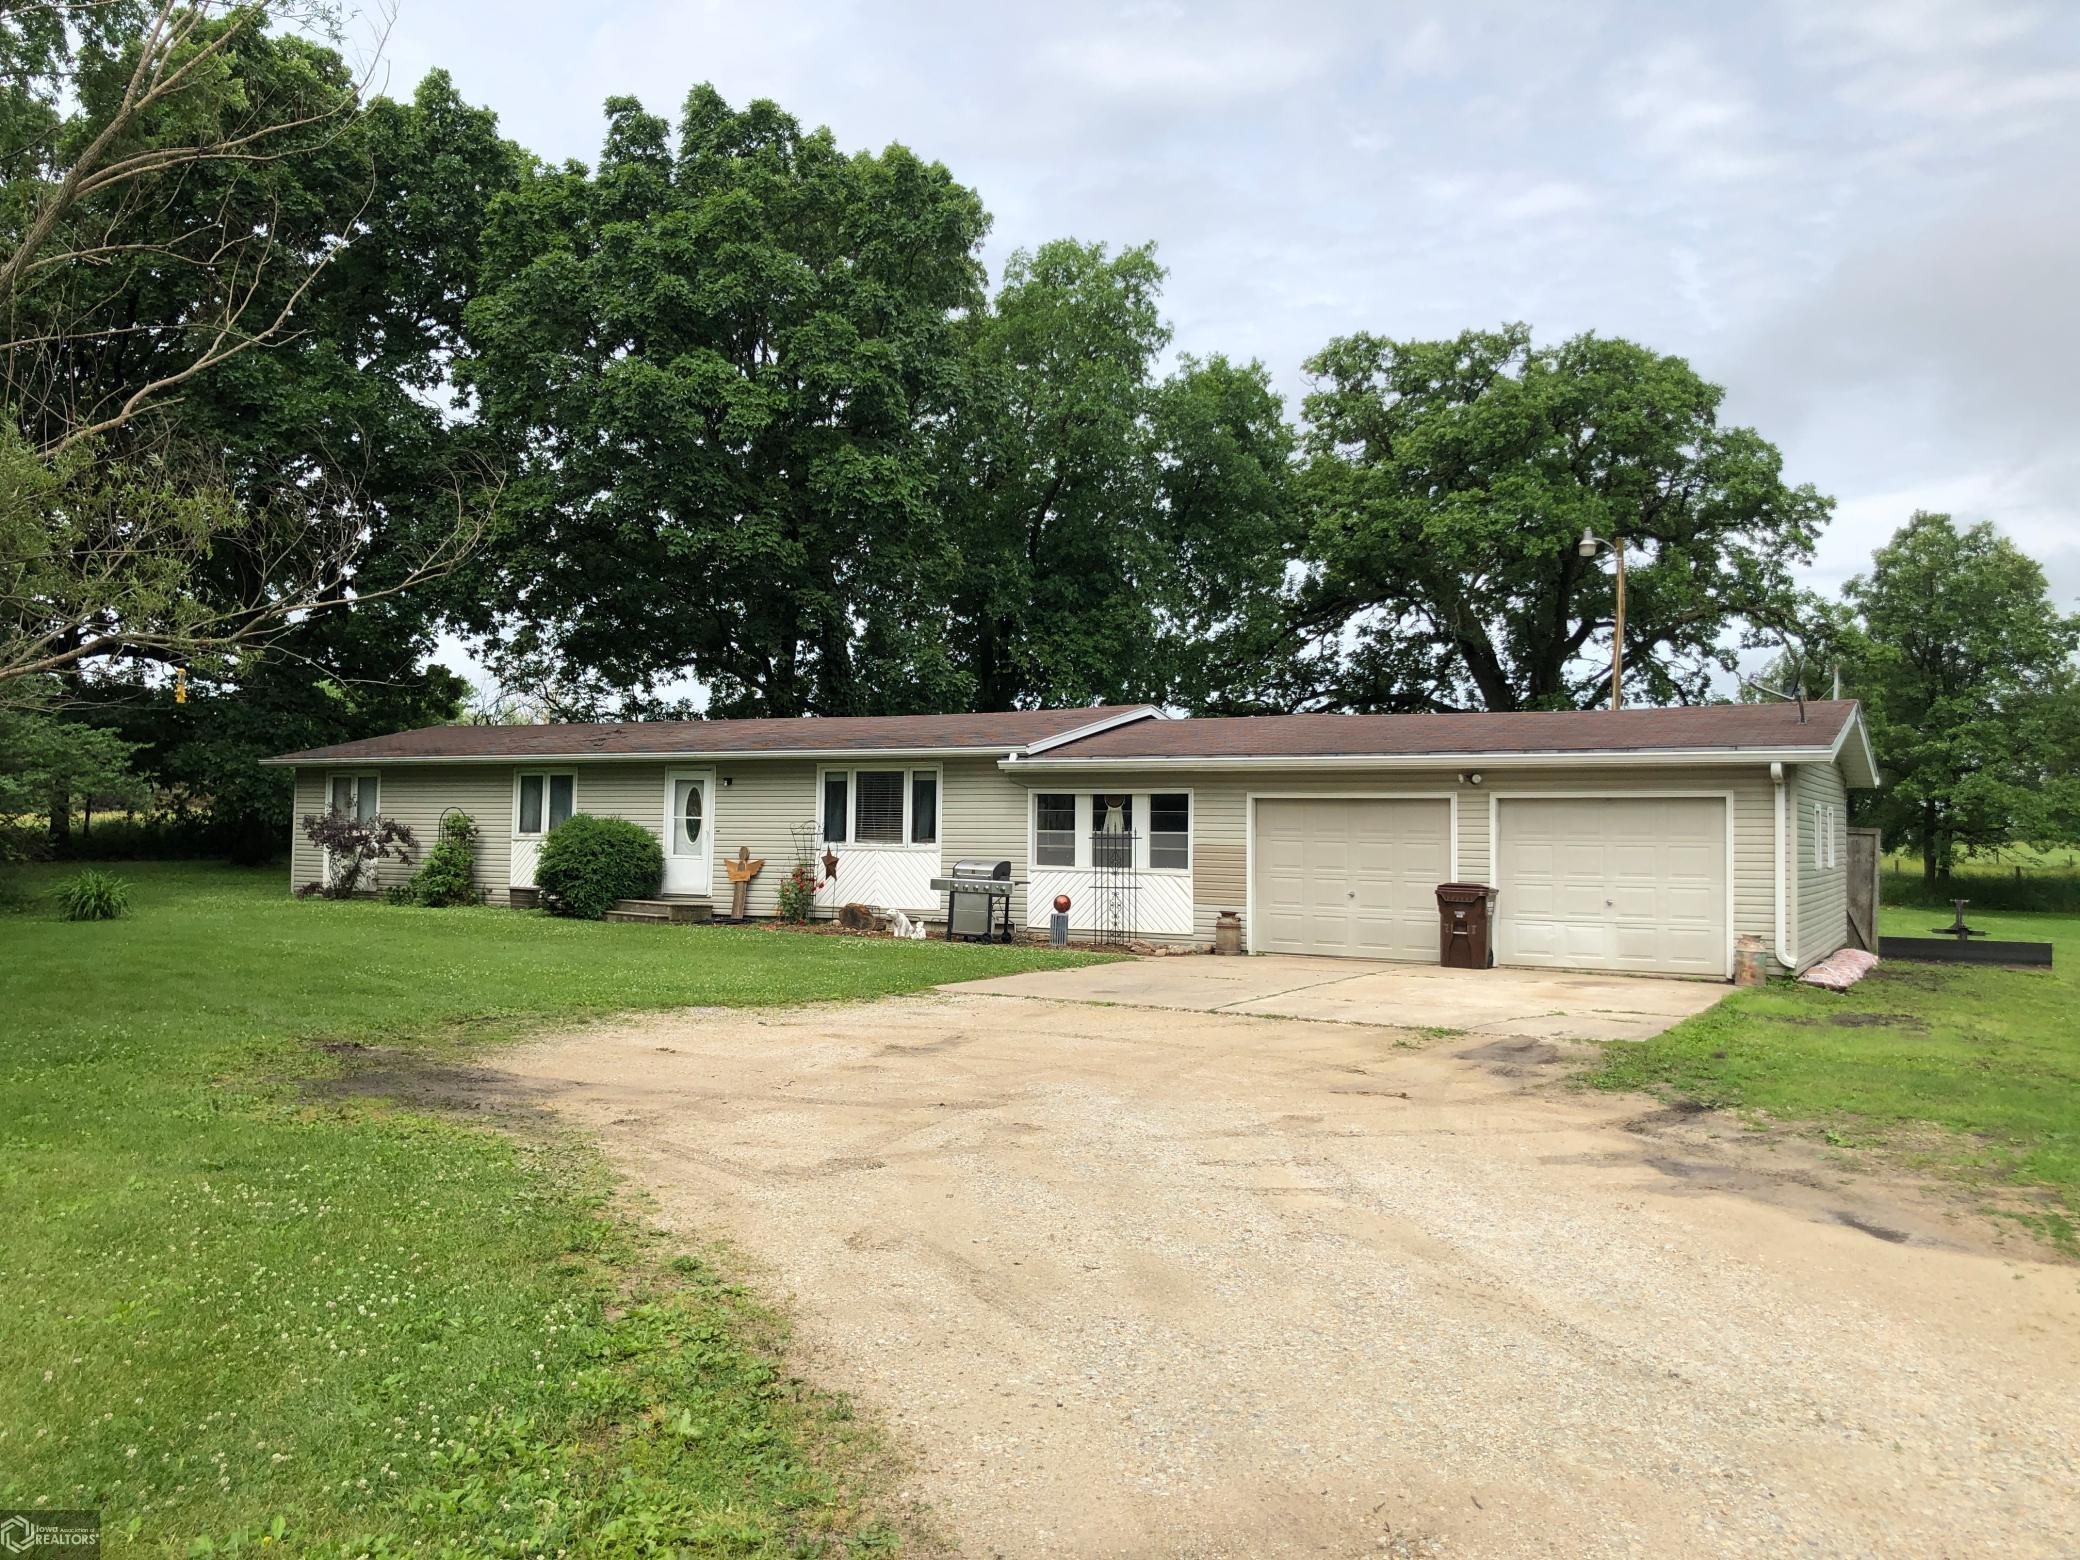 20017 Co Hwy D15 Property Photo - Iowa Falls, IA real estate listing